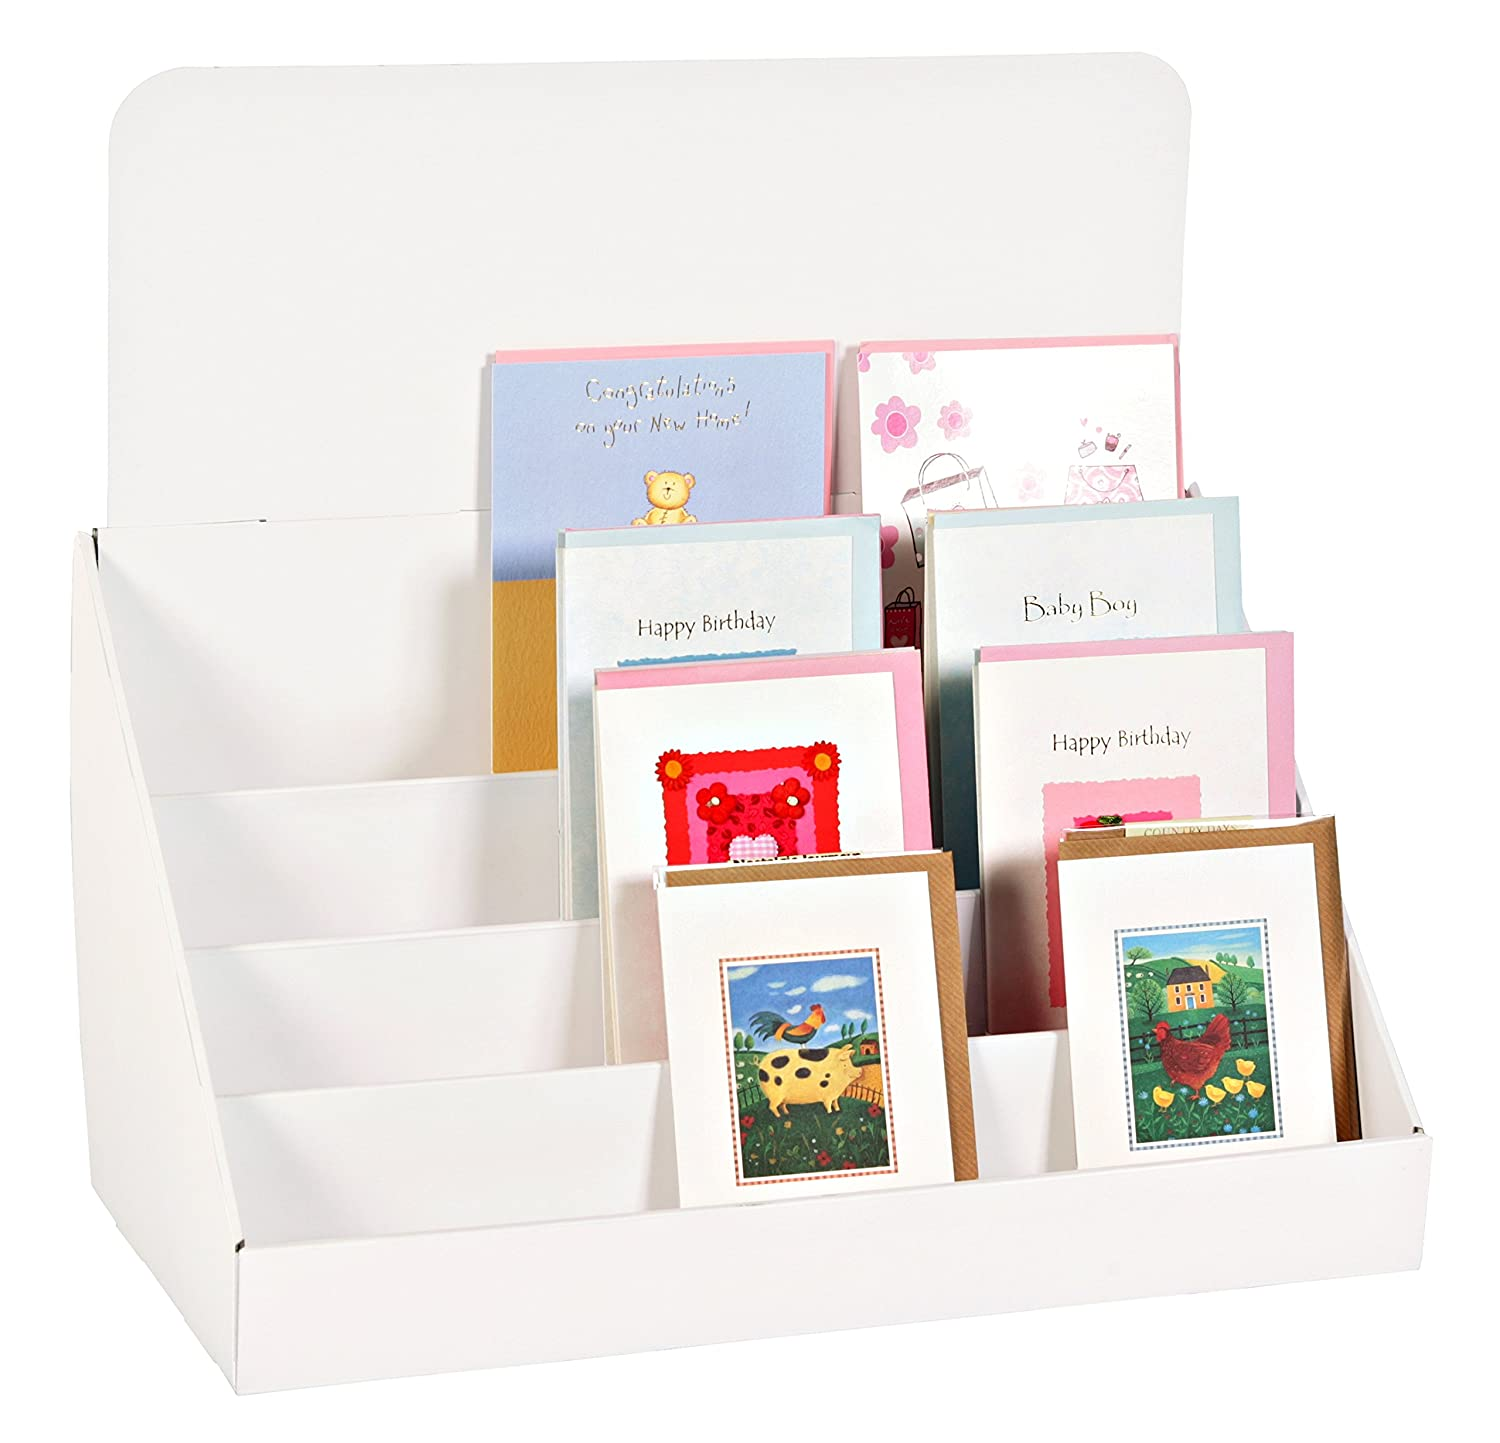 Stand Store 18 Inch 4 Tier Cardboard Greeting Card Display Stand